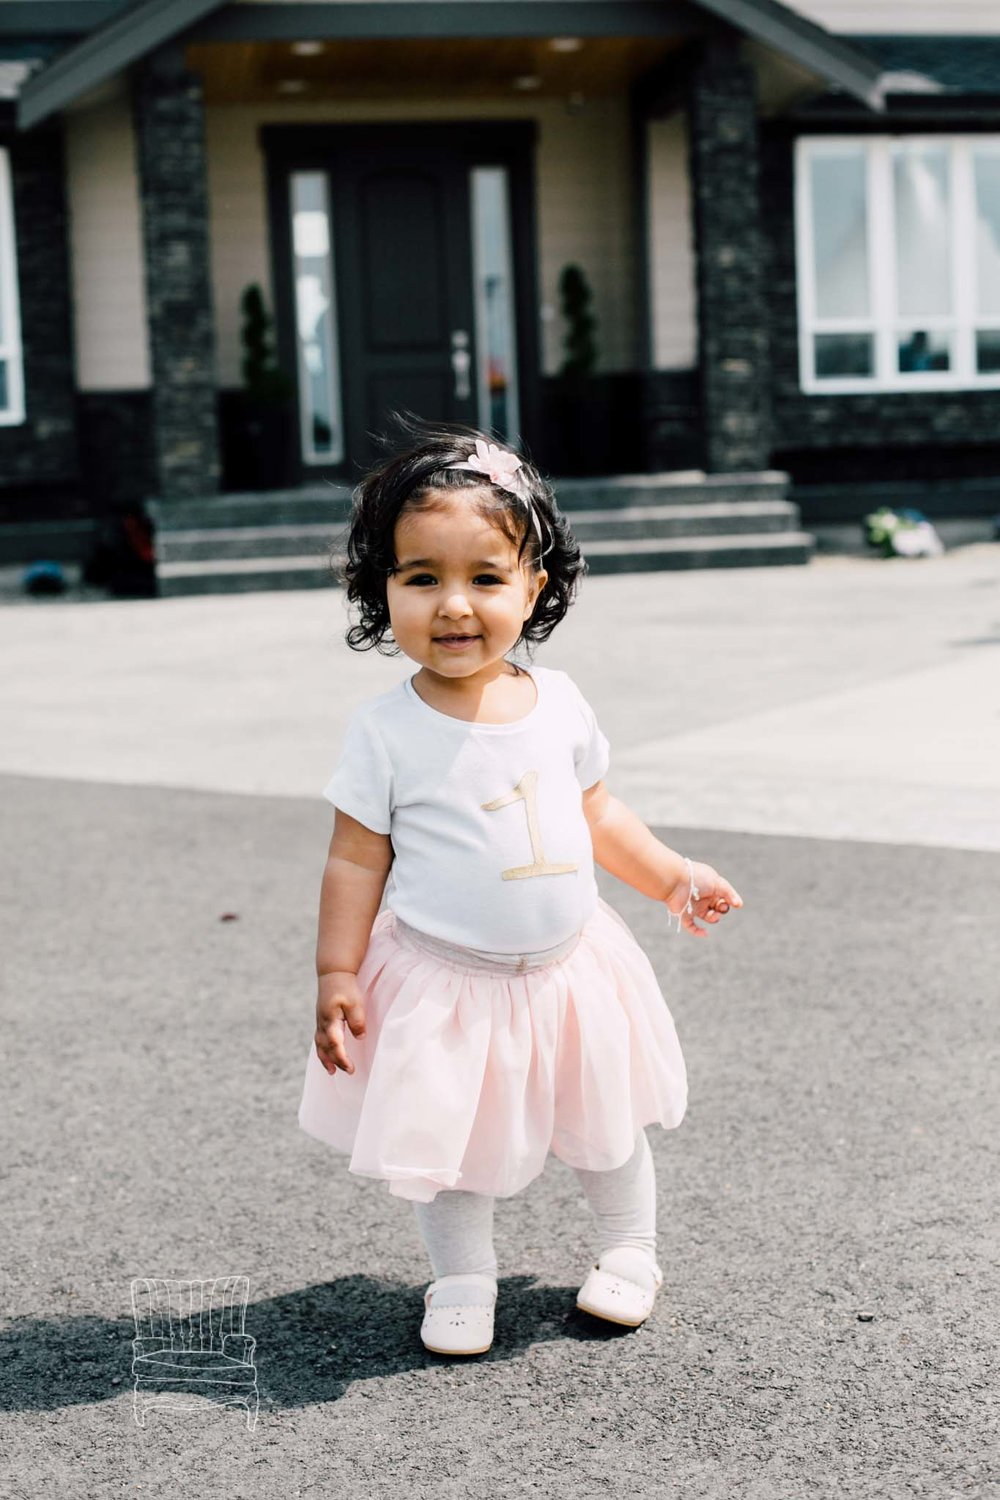 bellingham-one-year-birthday-party-photographer-mira-10.jpg